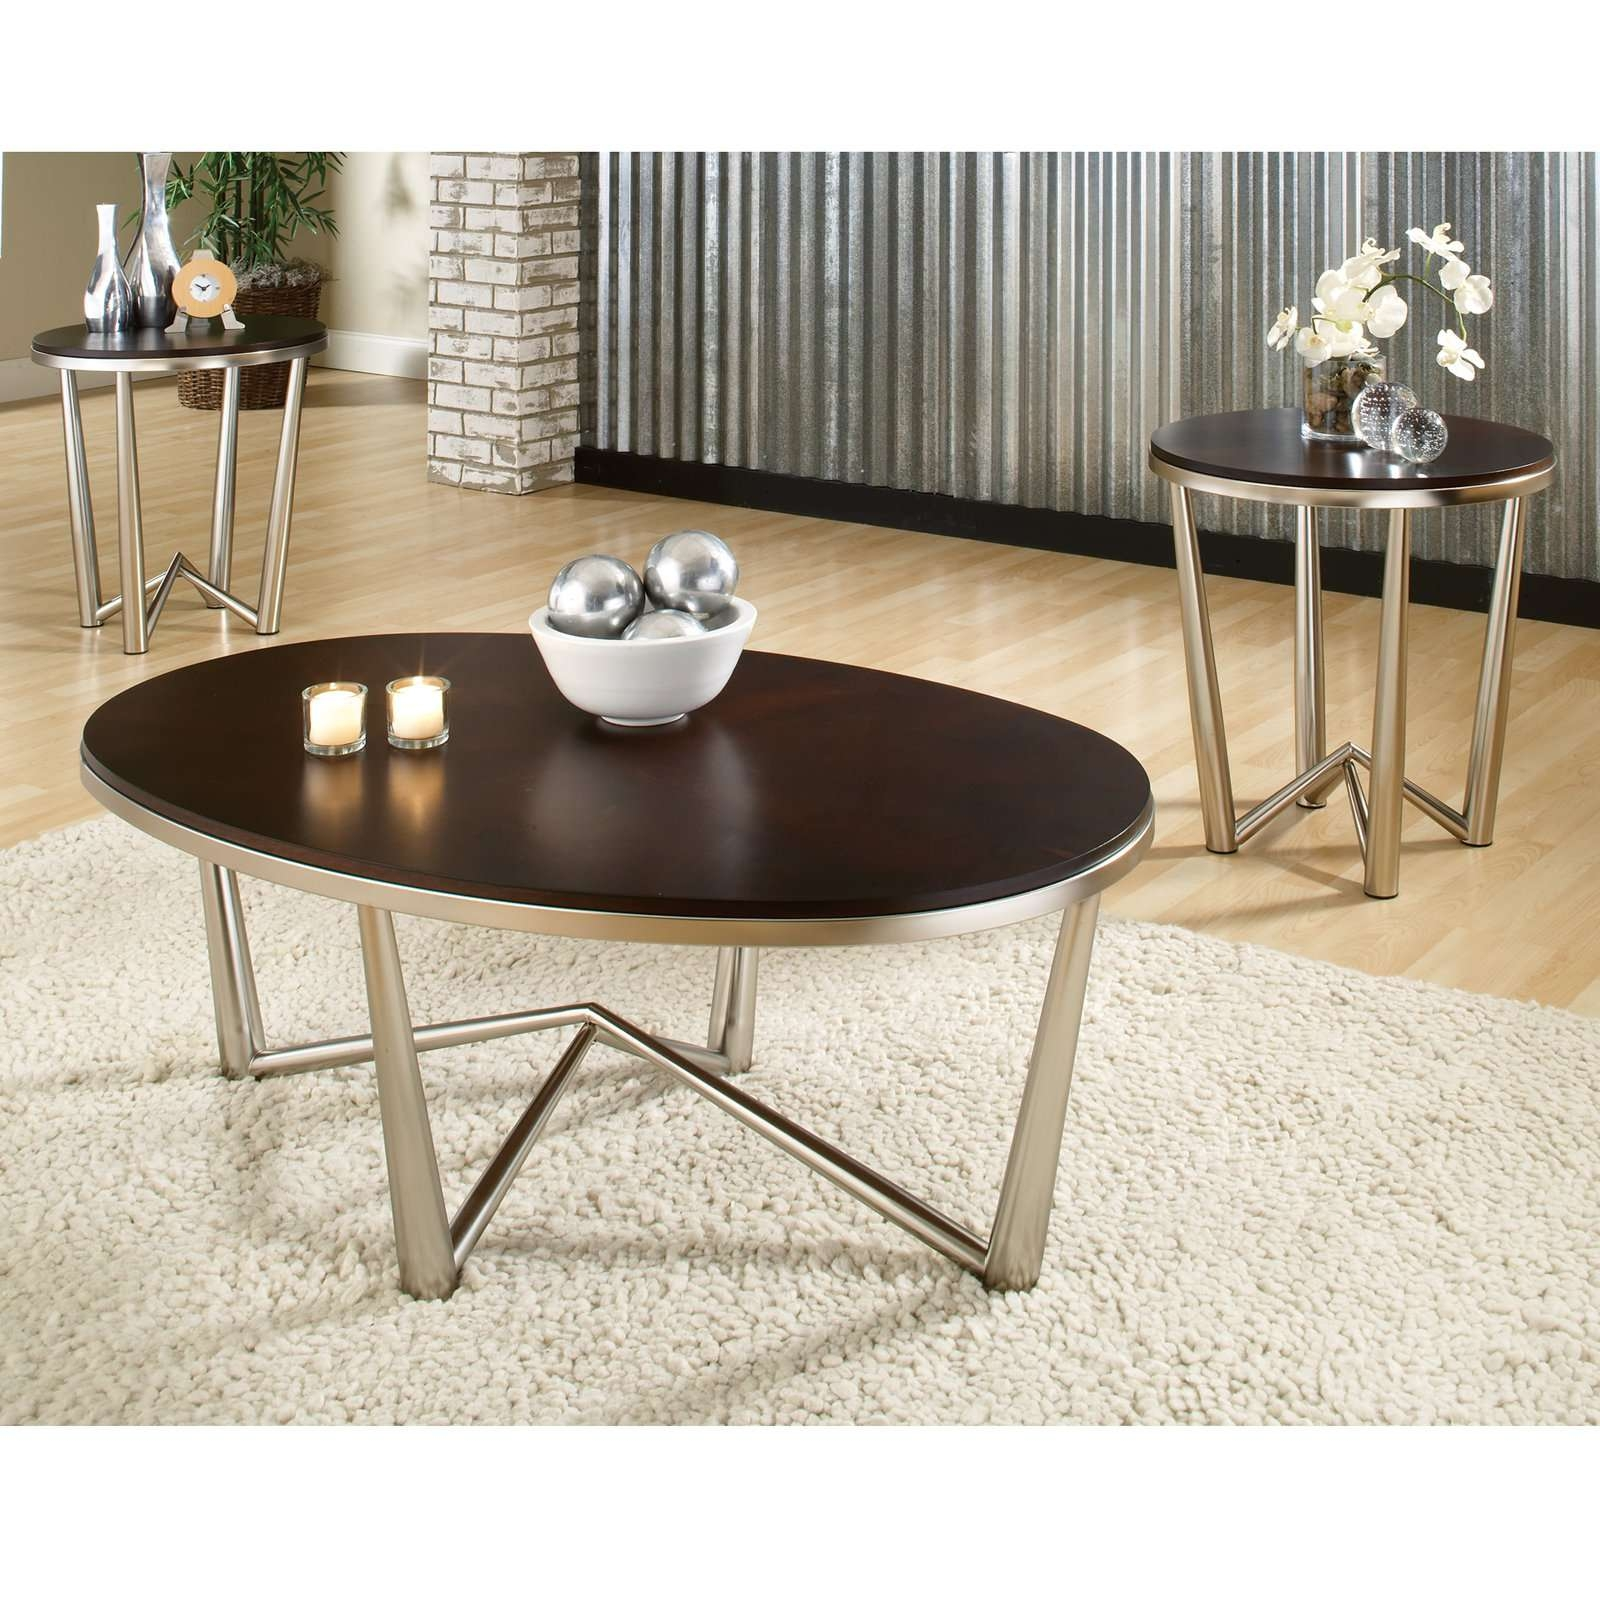 Coffee Table : 3 Coffee Table Set My Existing Coffee Table In Throughout Current Oval Shaped Coffee Tables (View 14 of 20)